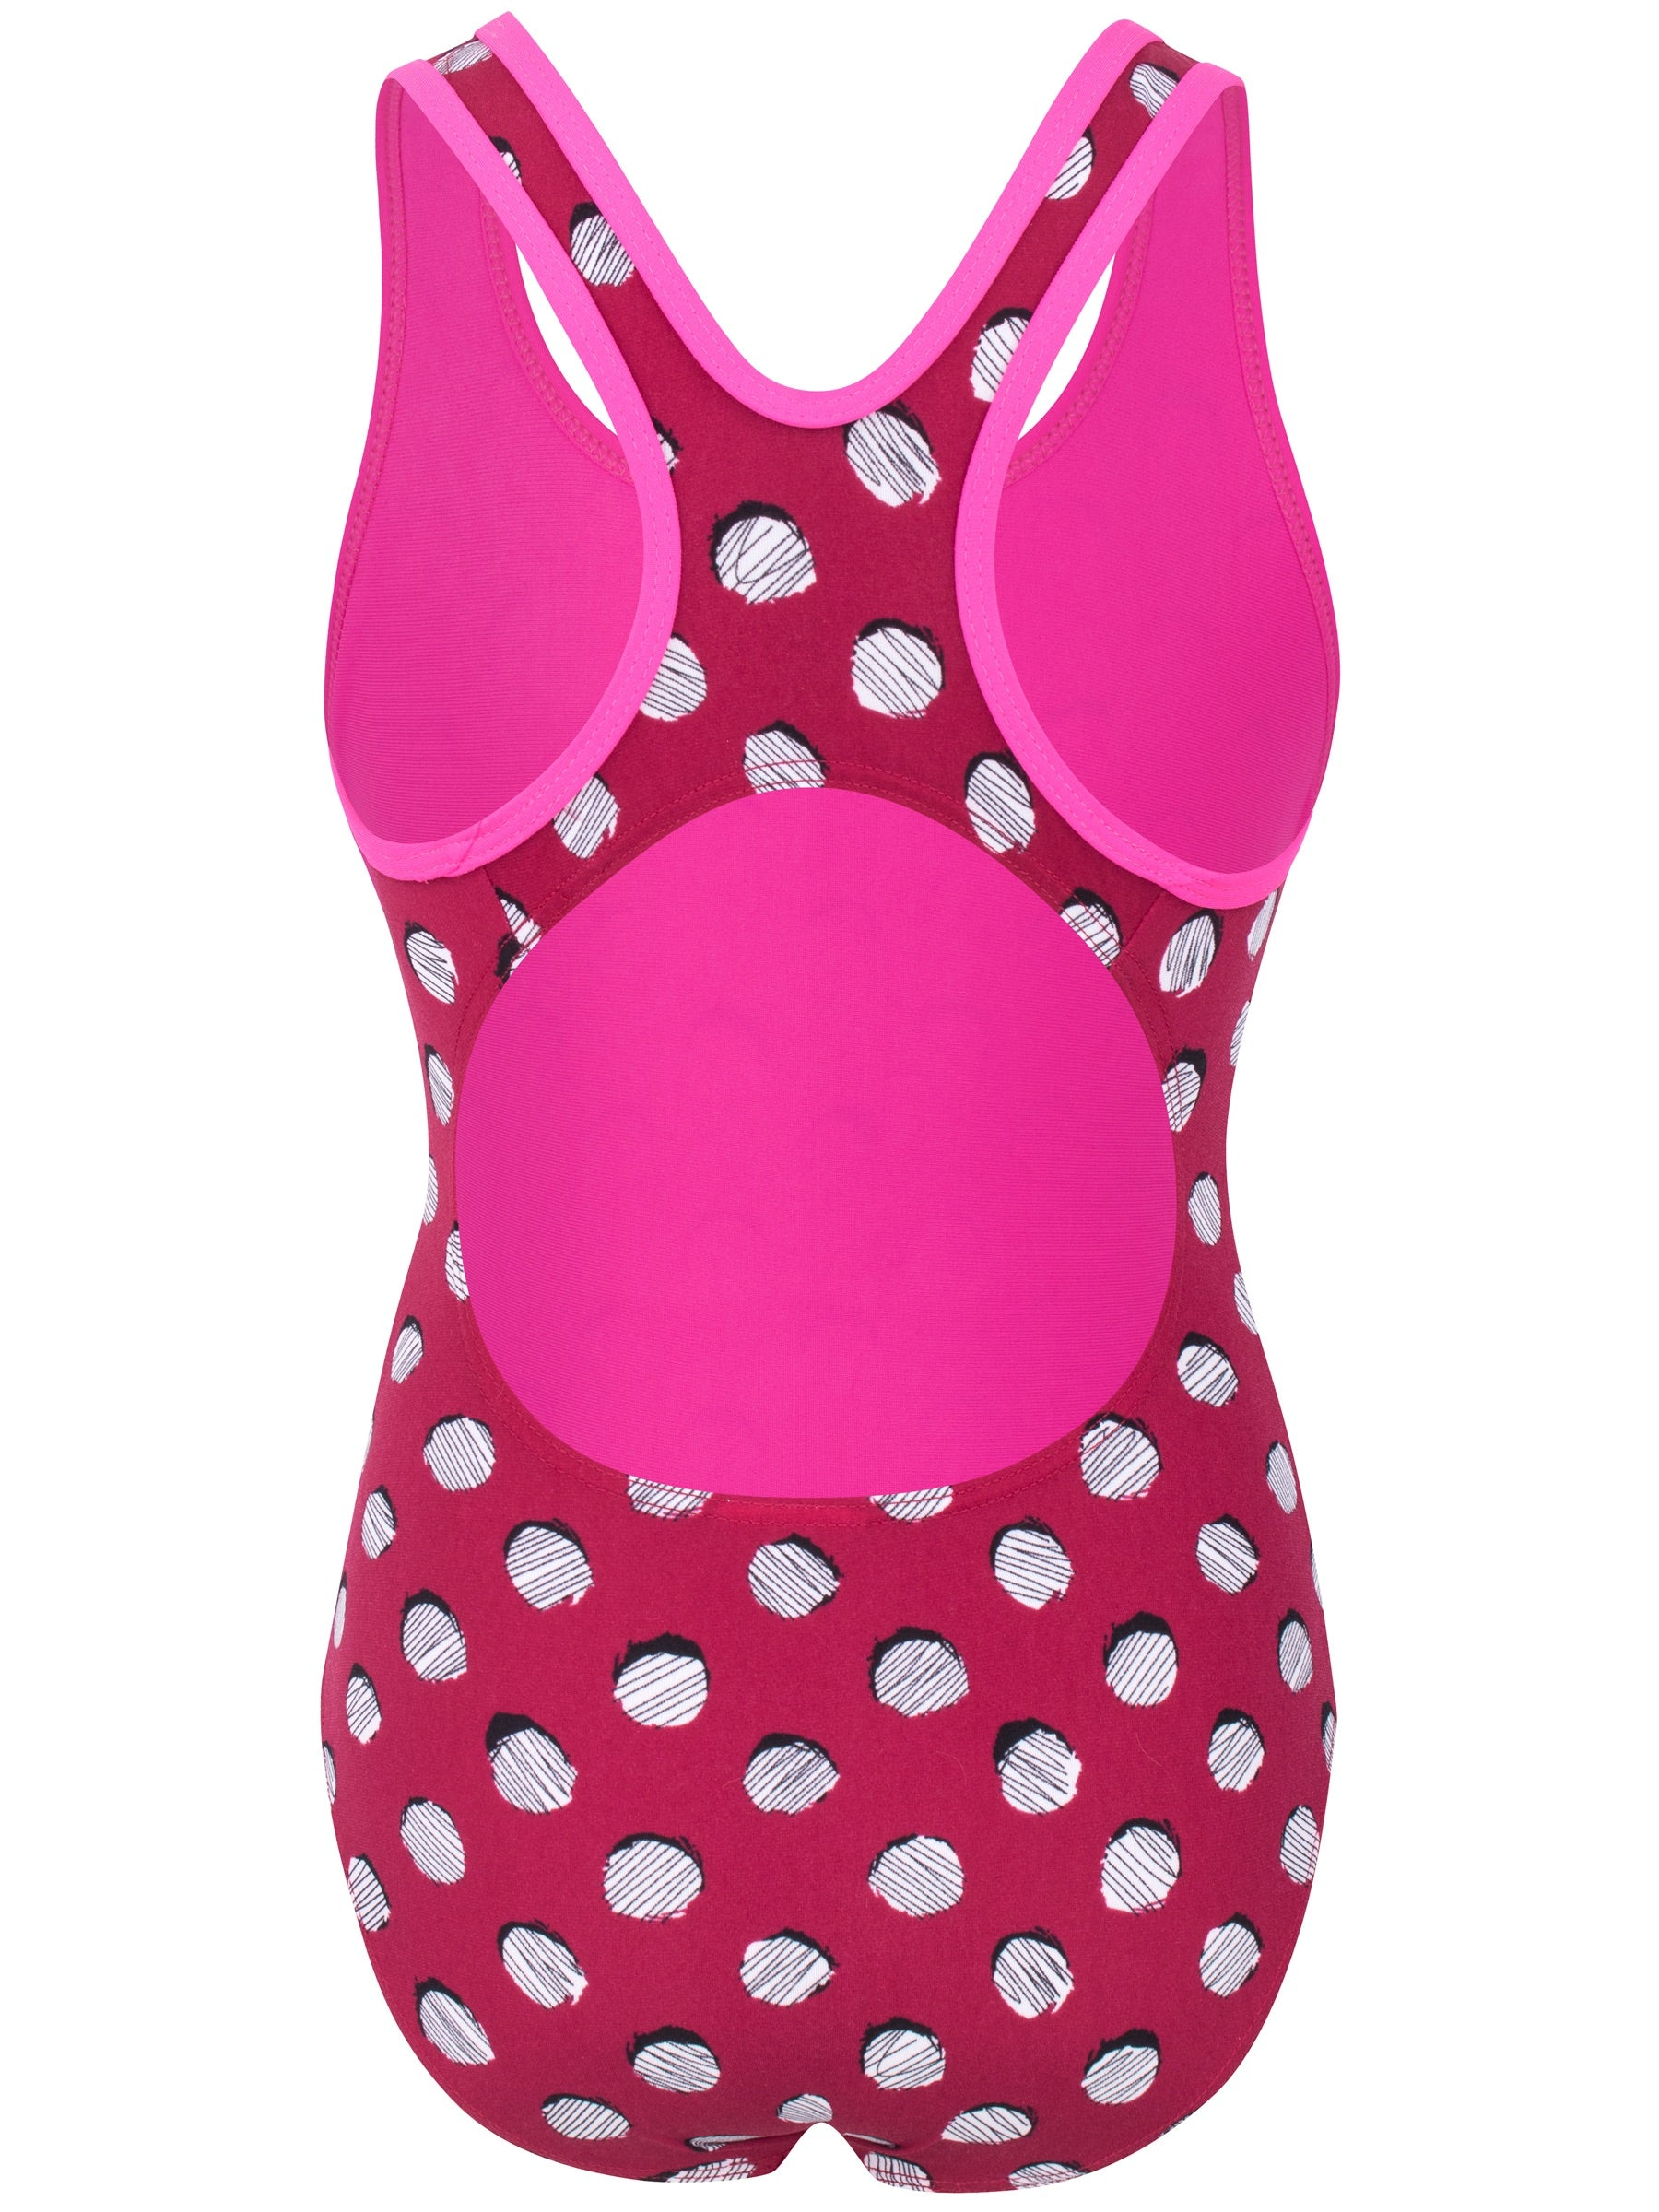 Jessie Wave Rider Crosstrainer GIRLS